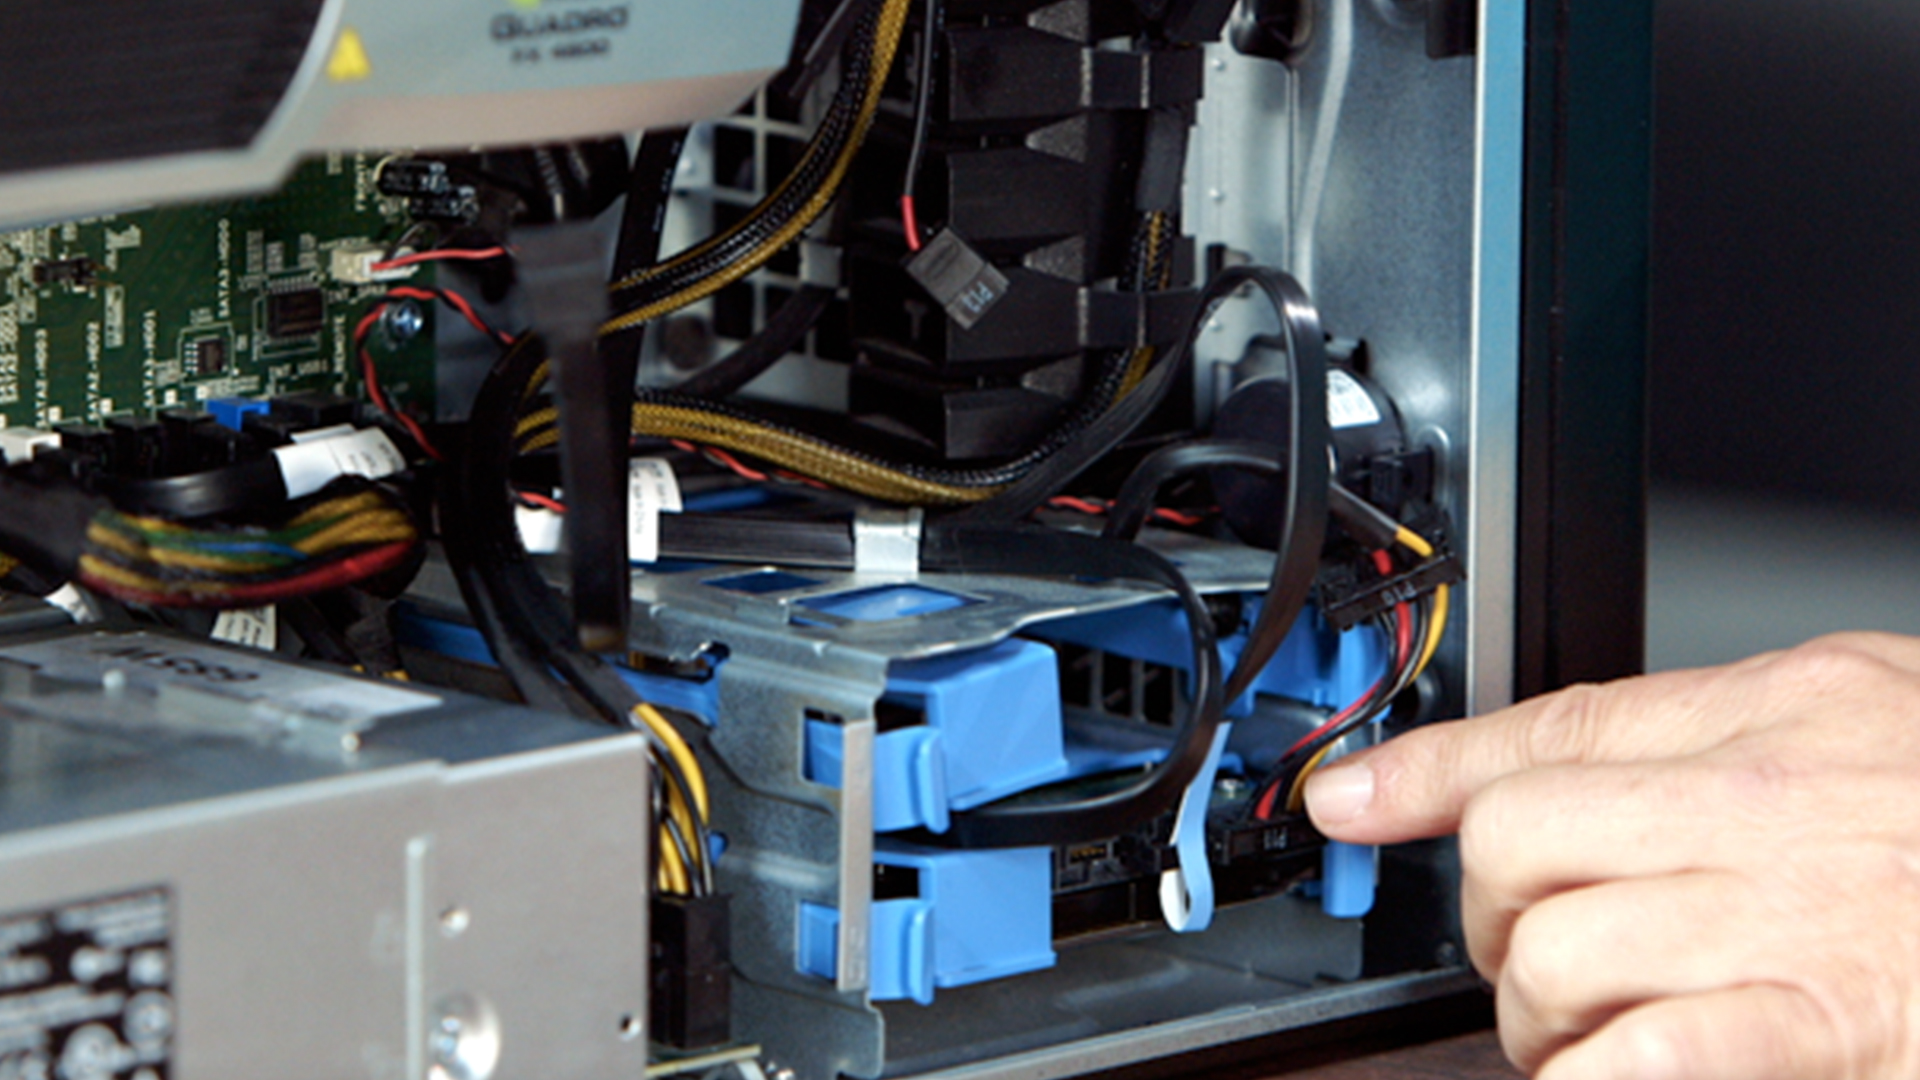 Computer Components And Peripherals For It Technicians Motherboard Diagrams A Deeper Understanding Of The Parts